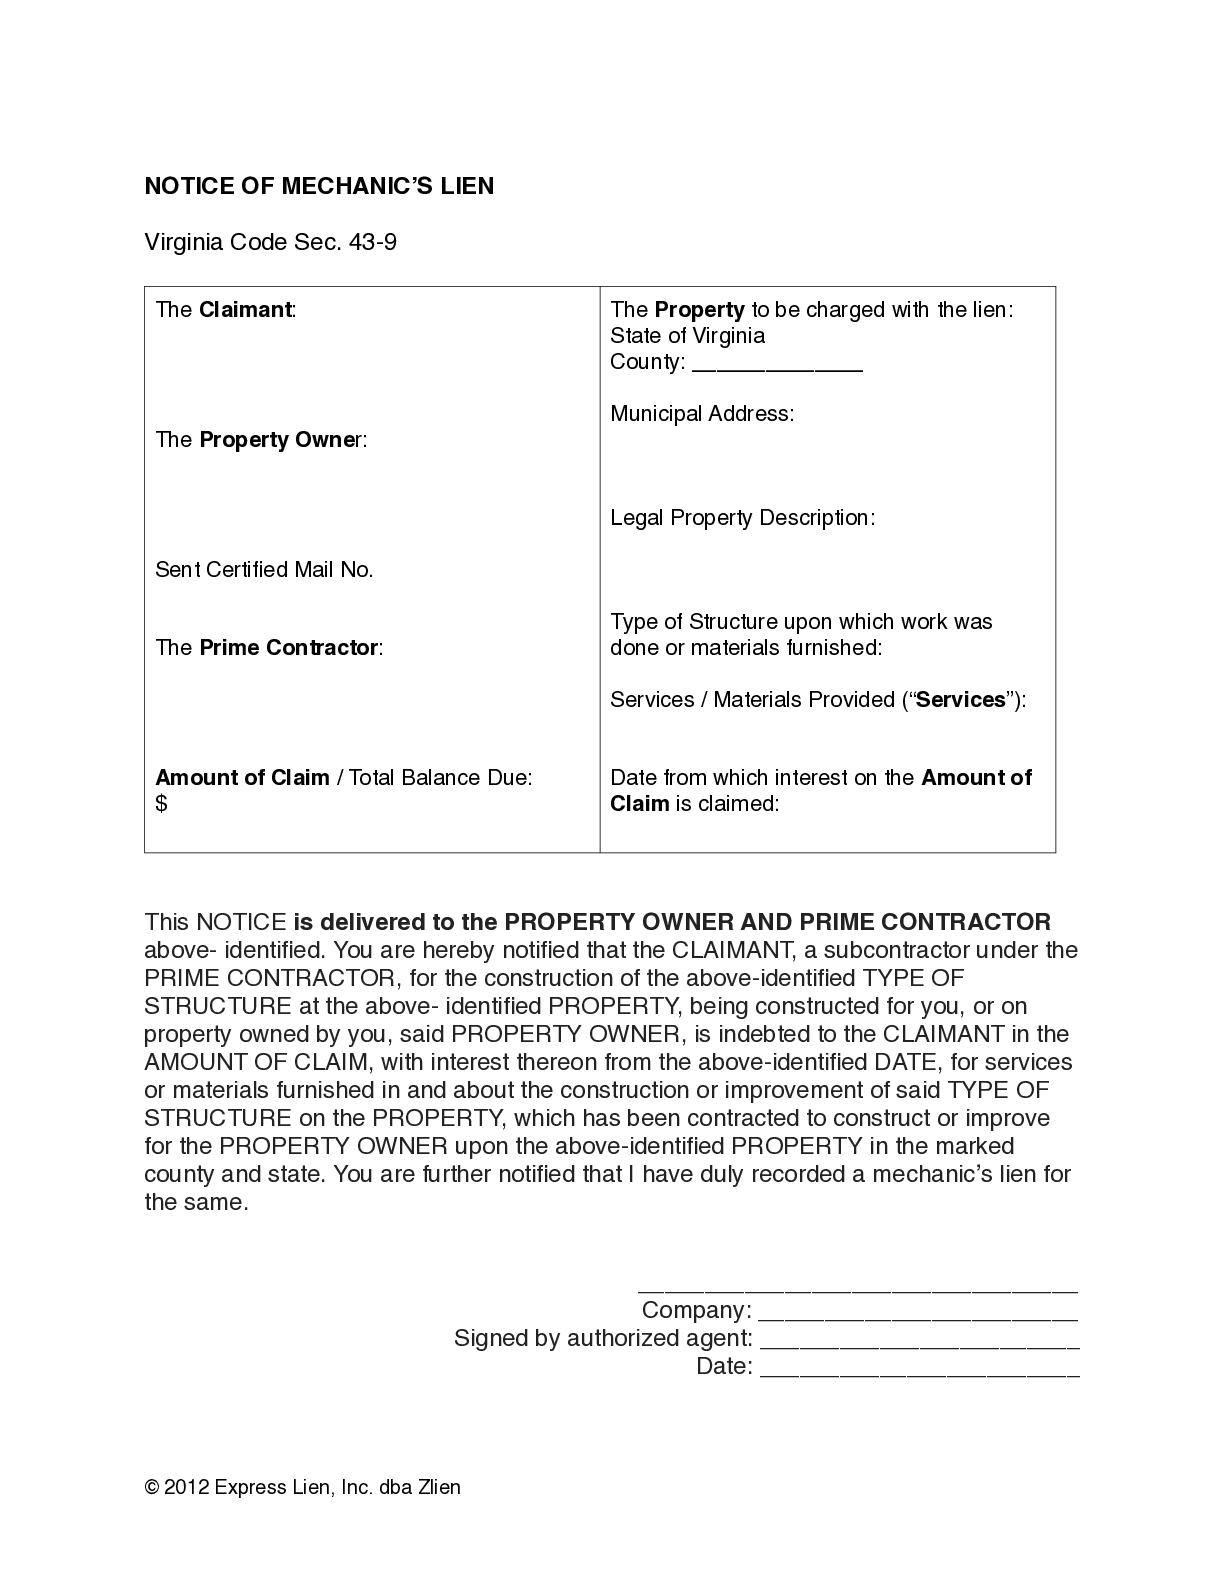 Virginia Memorandum of Lien for General Contractors Form - free from